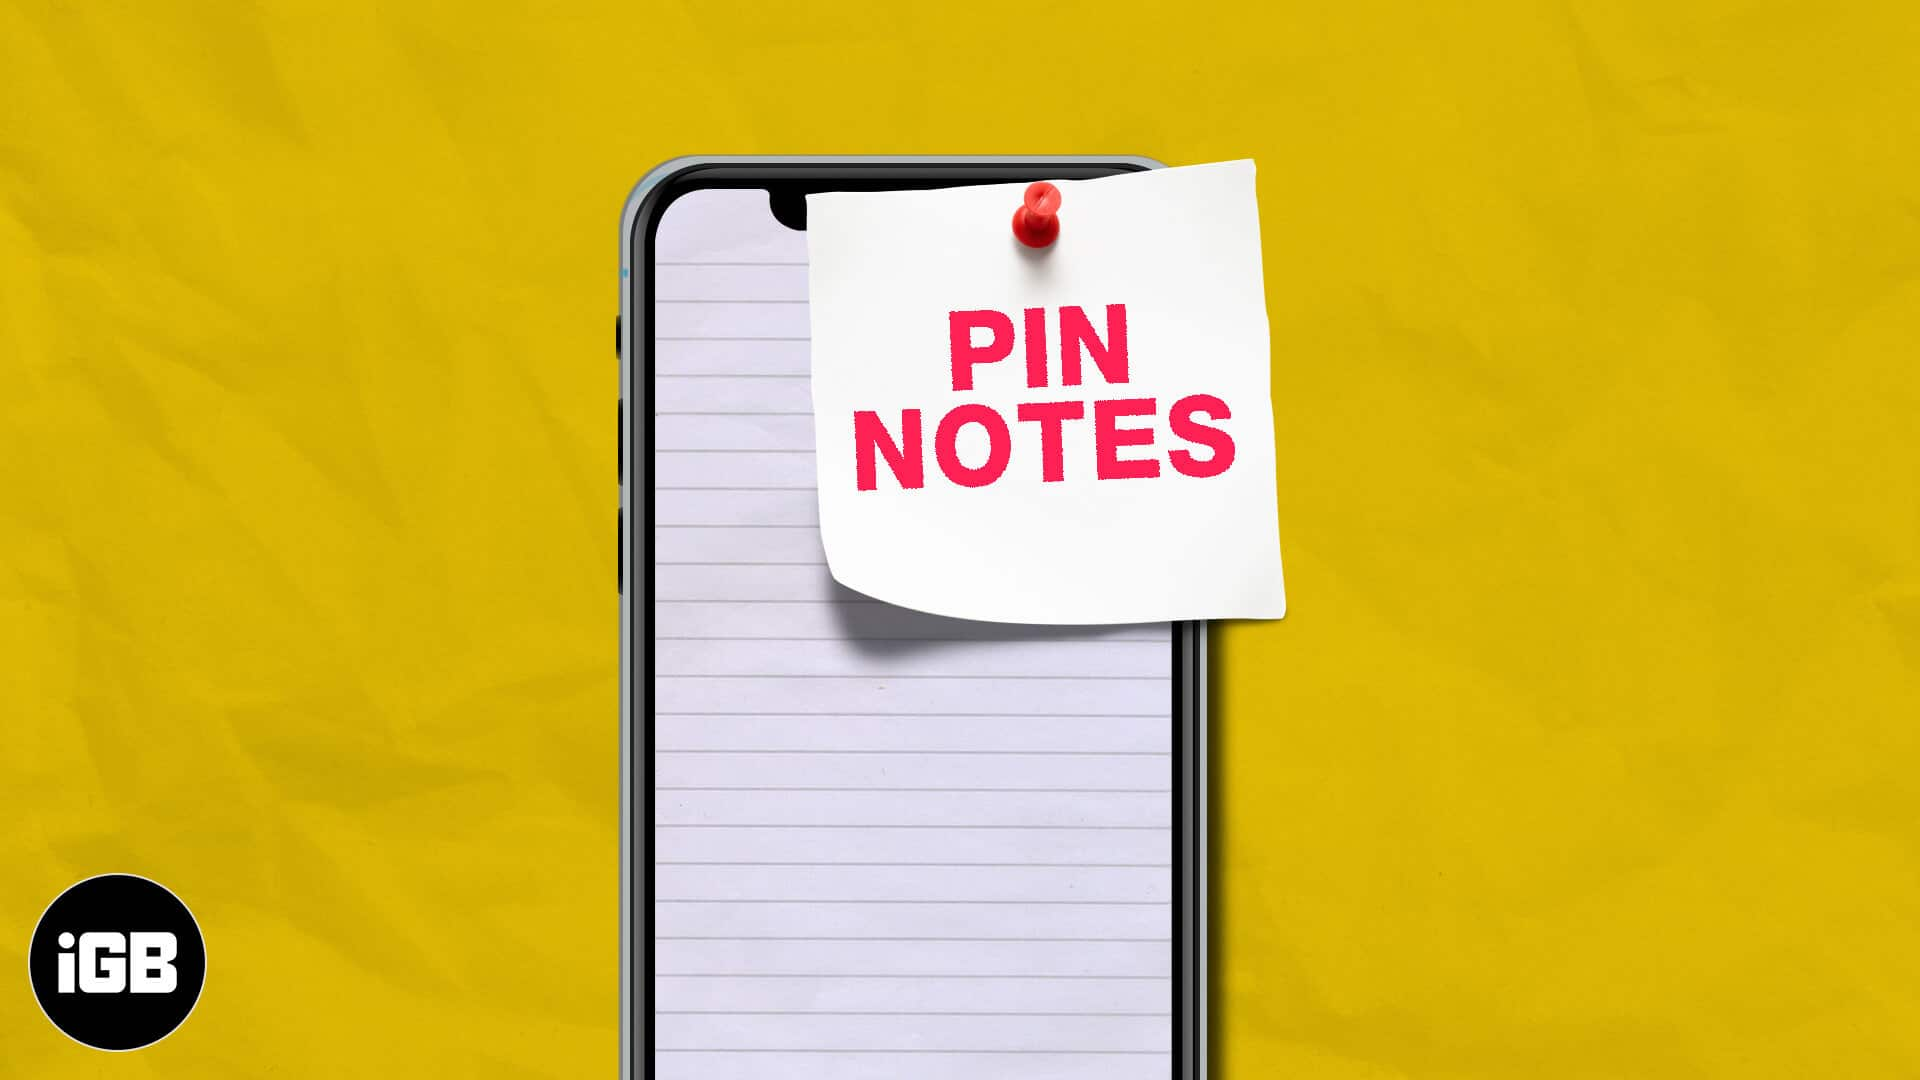 How to Pin Notes on iPhone, iPad and Mac